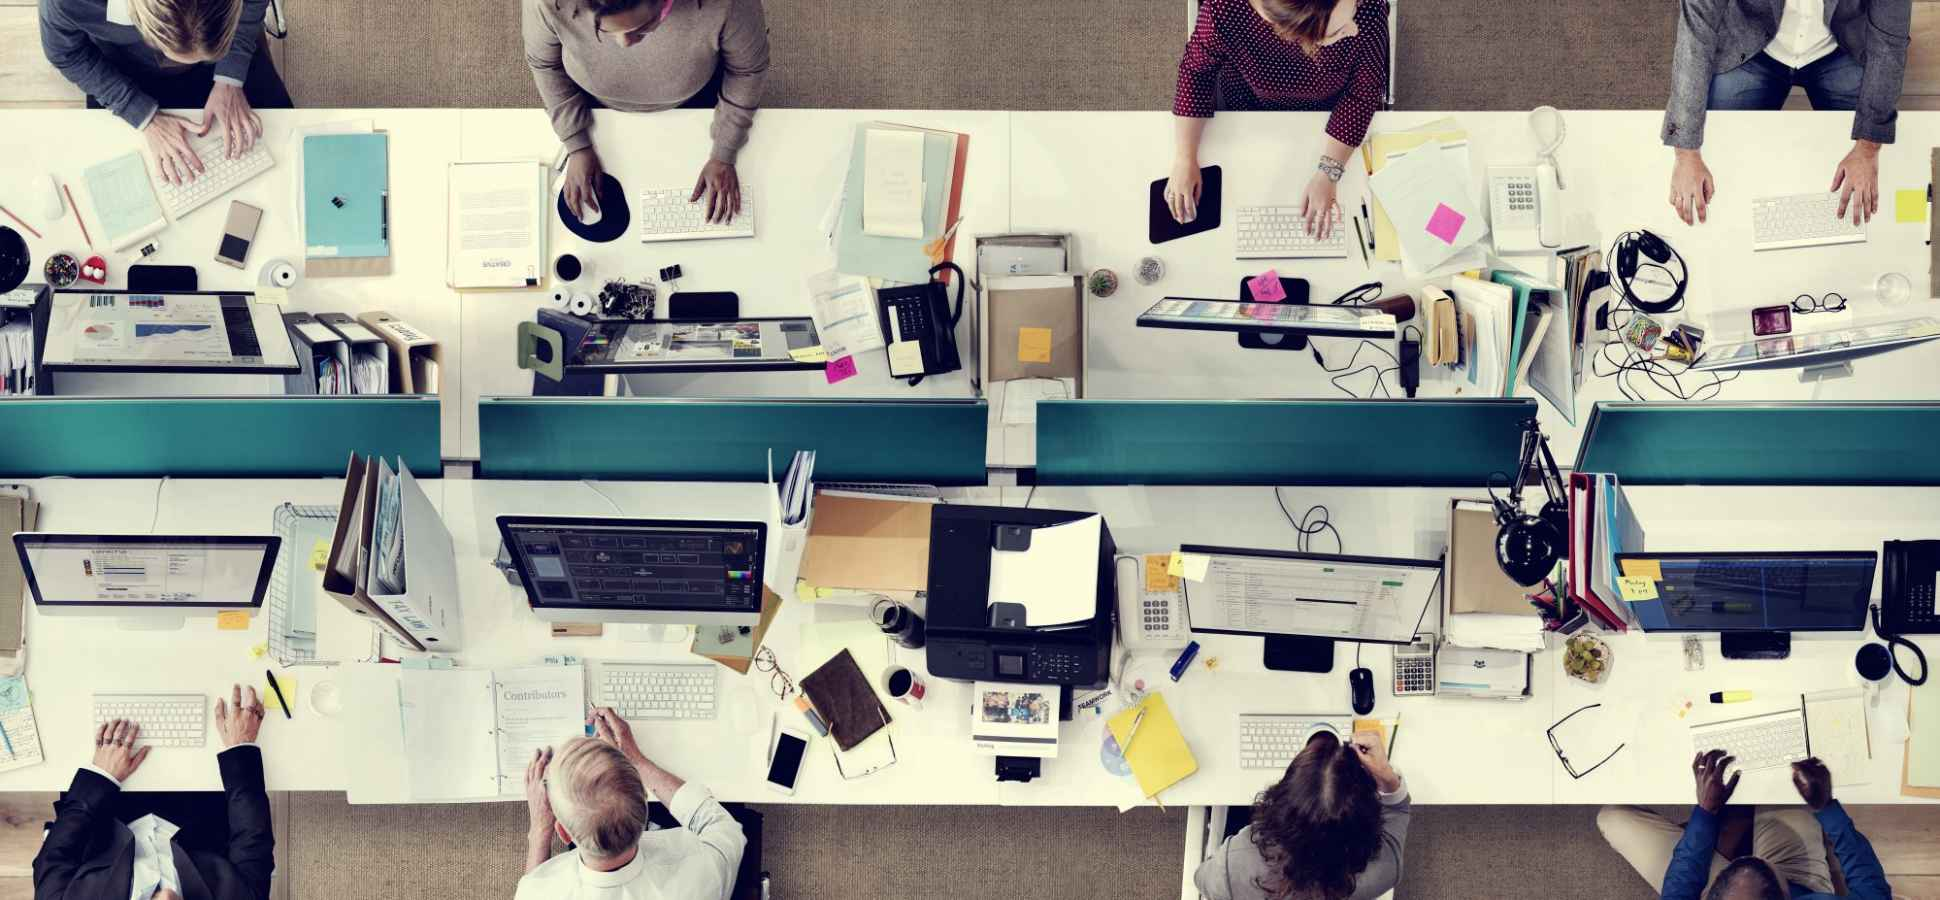 Why You Need to Think Beyond Race and Gender When Building a Diverse Team